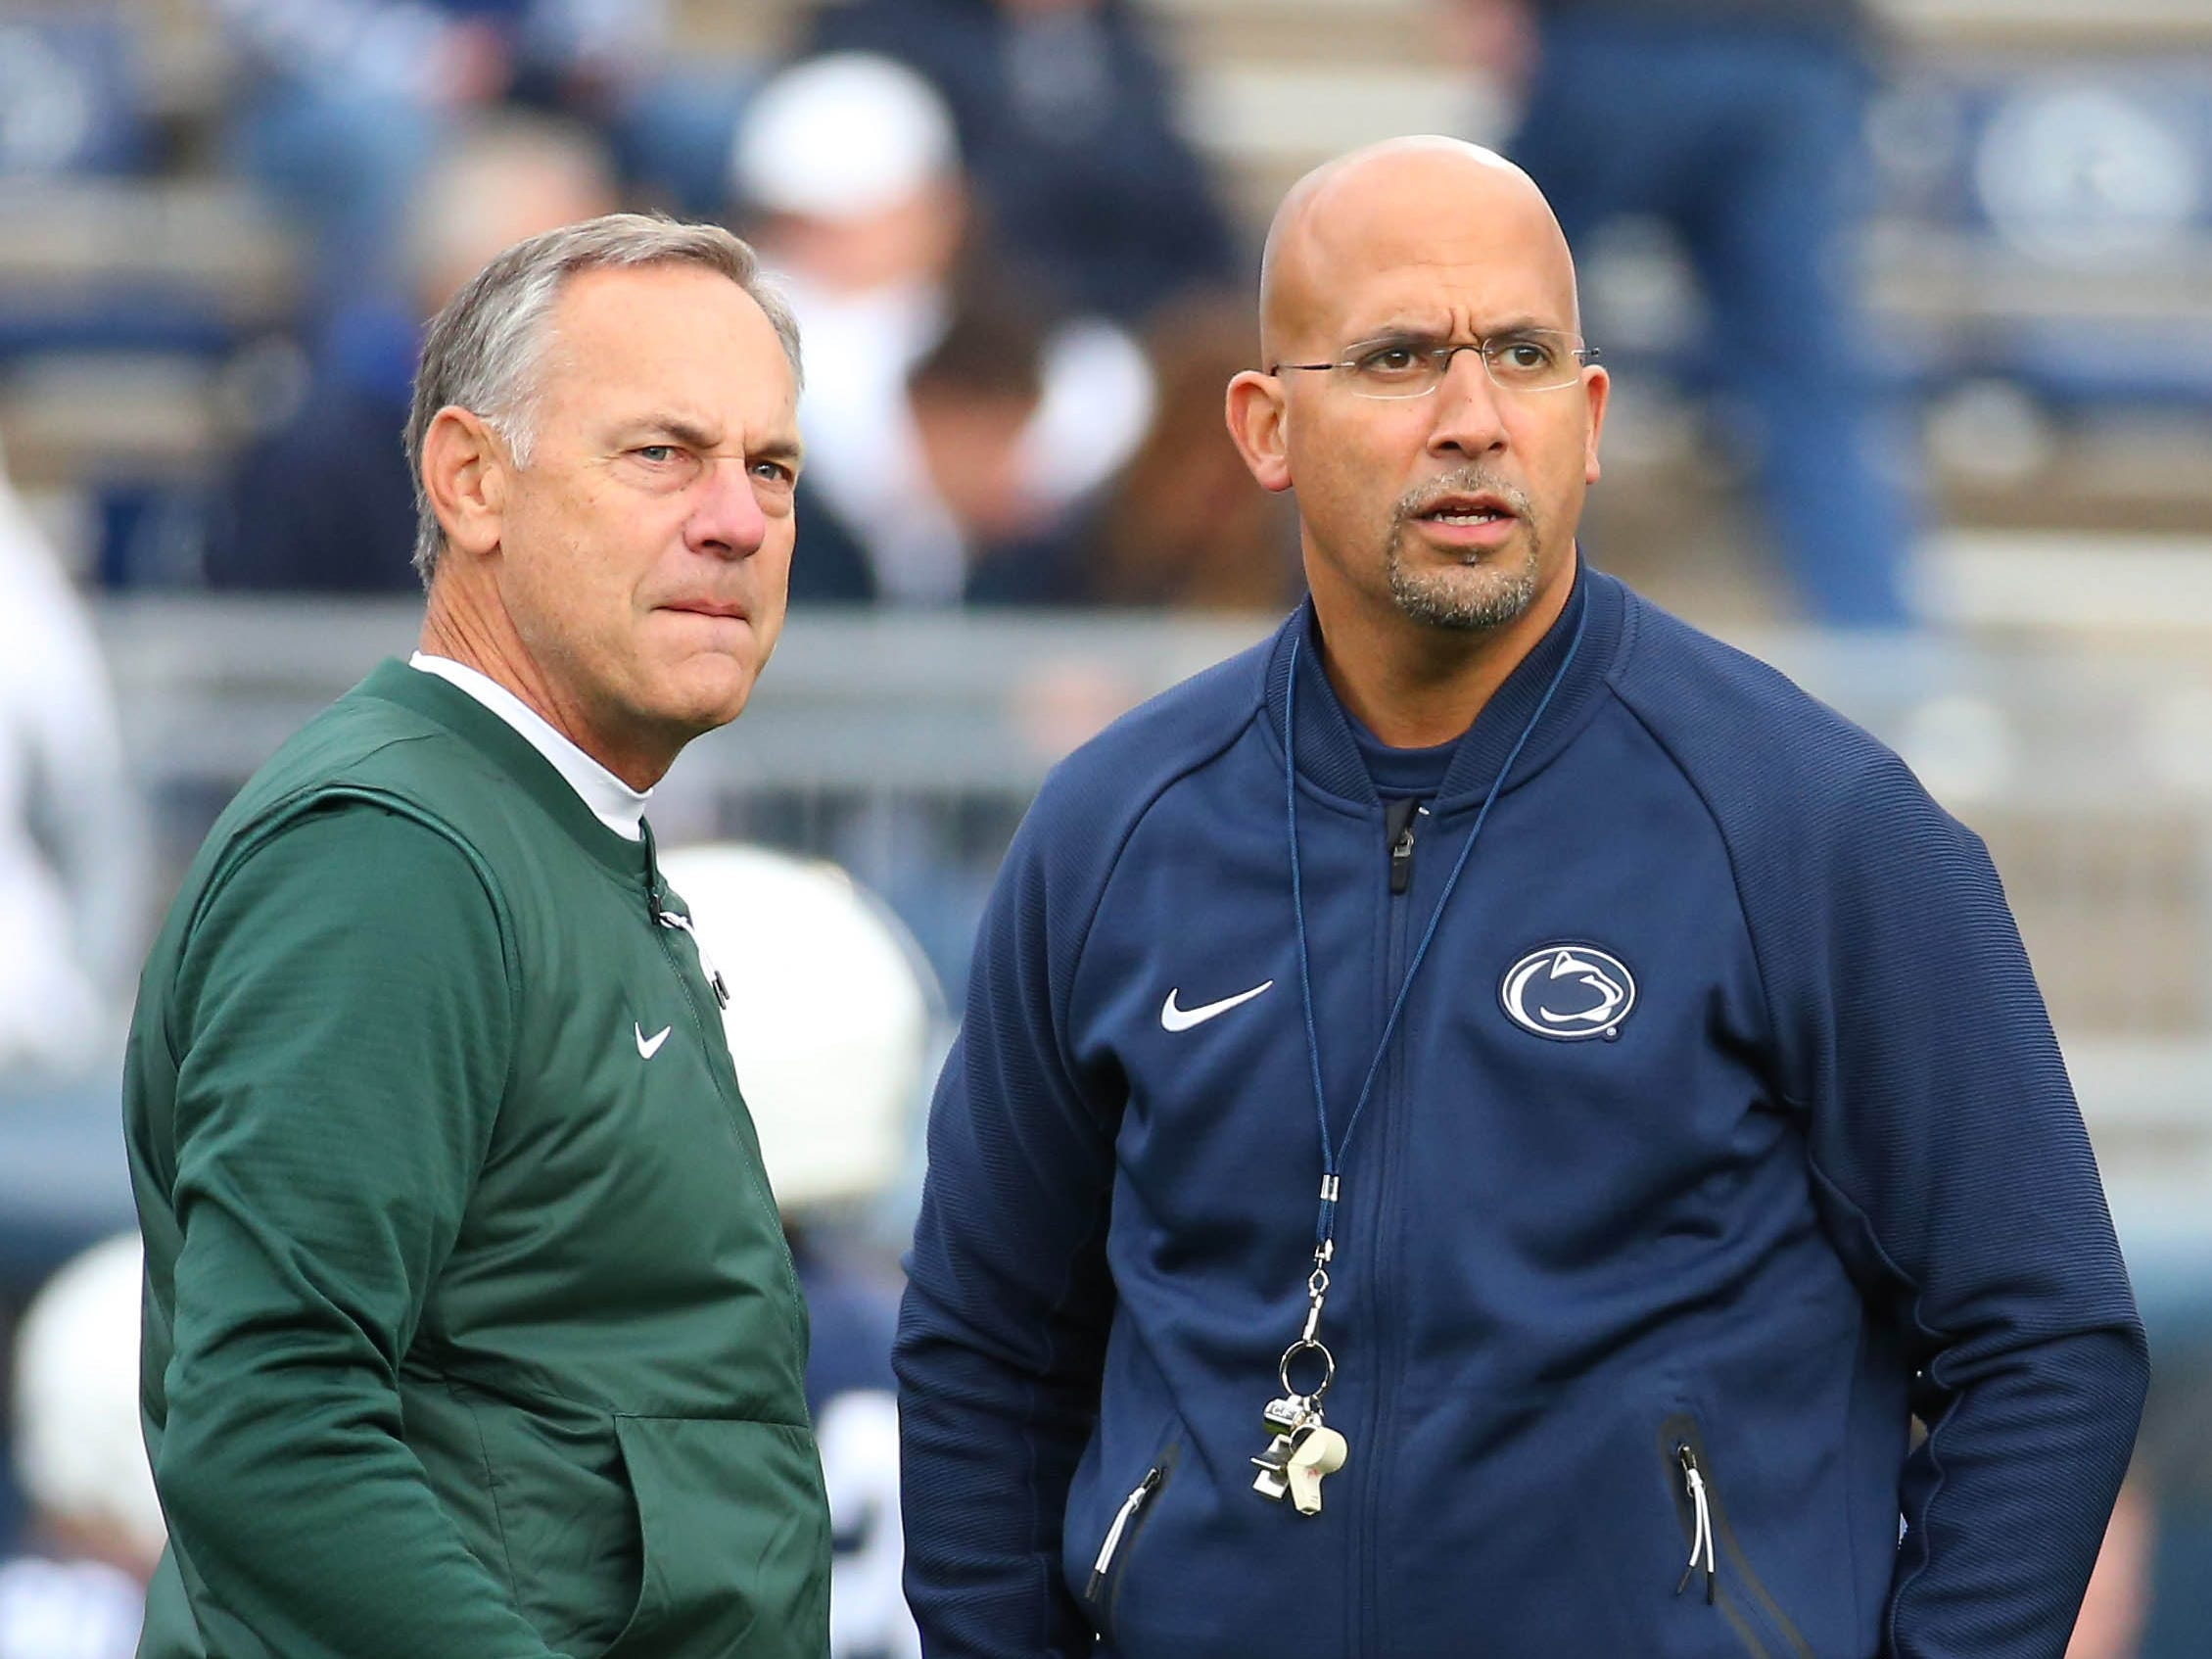 Michigan State Spartans head coach Mark Dantonio (left) and Penn State Nittany Lions head coach James Franklin (right) meet prior to the game at Beaver Stadium.